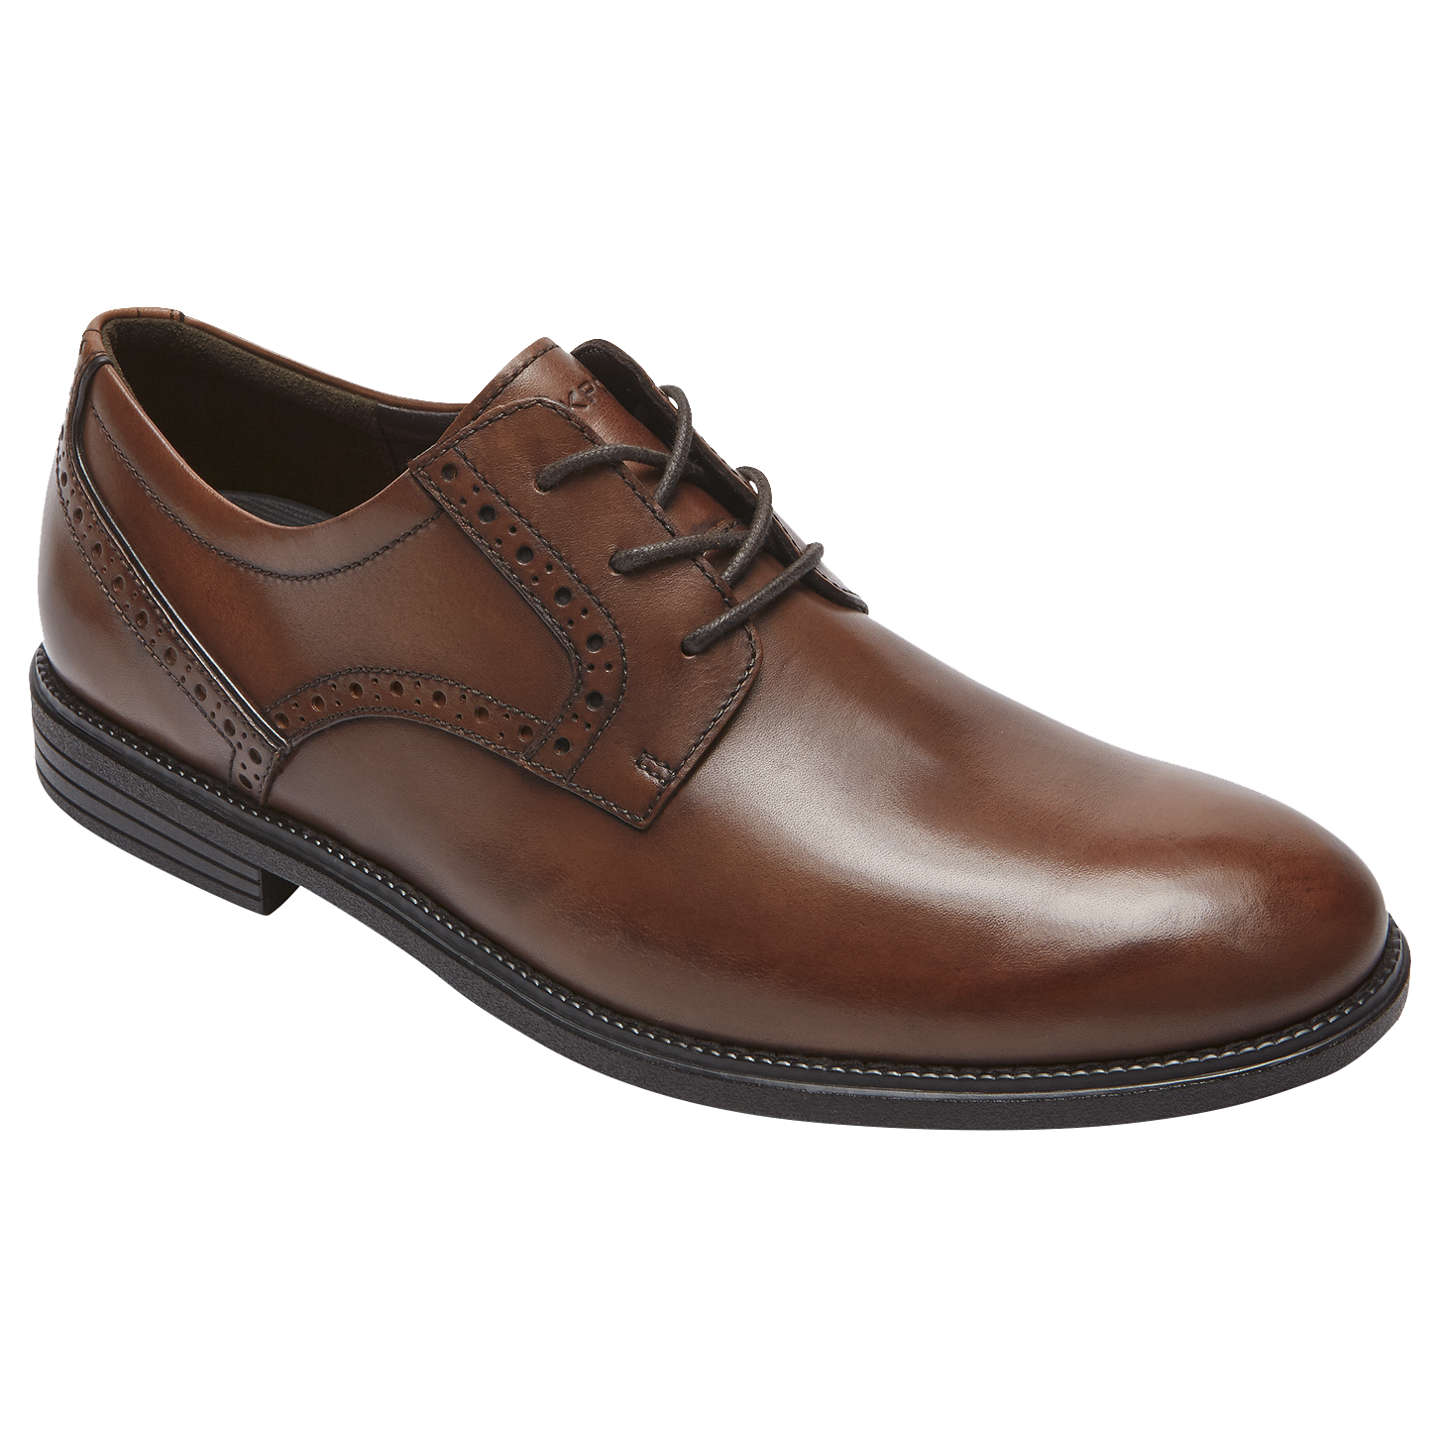 BuyRockport Madson Derby Leather Shoes, Tan, 7 Online at johnlewis.com ...